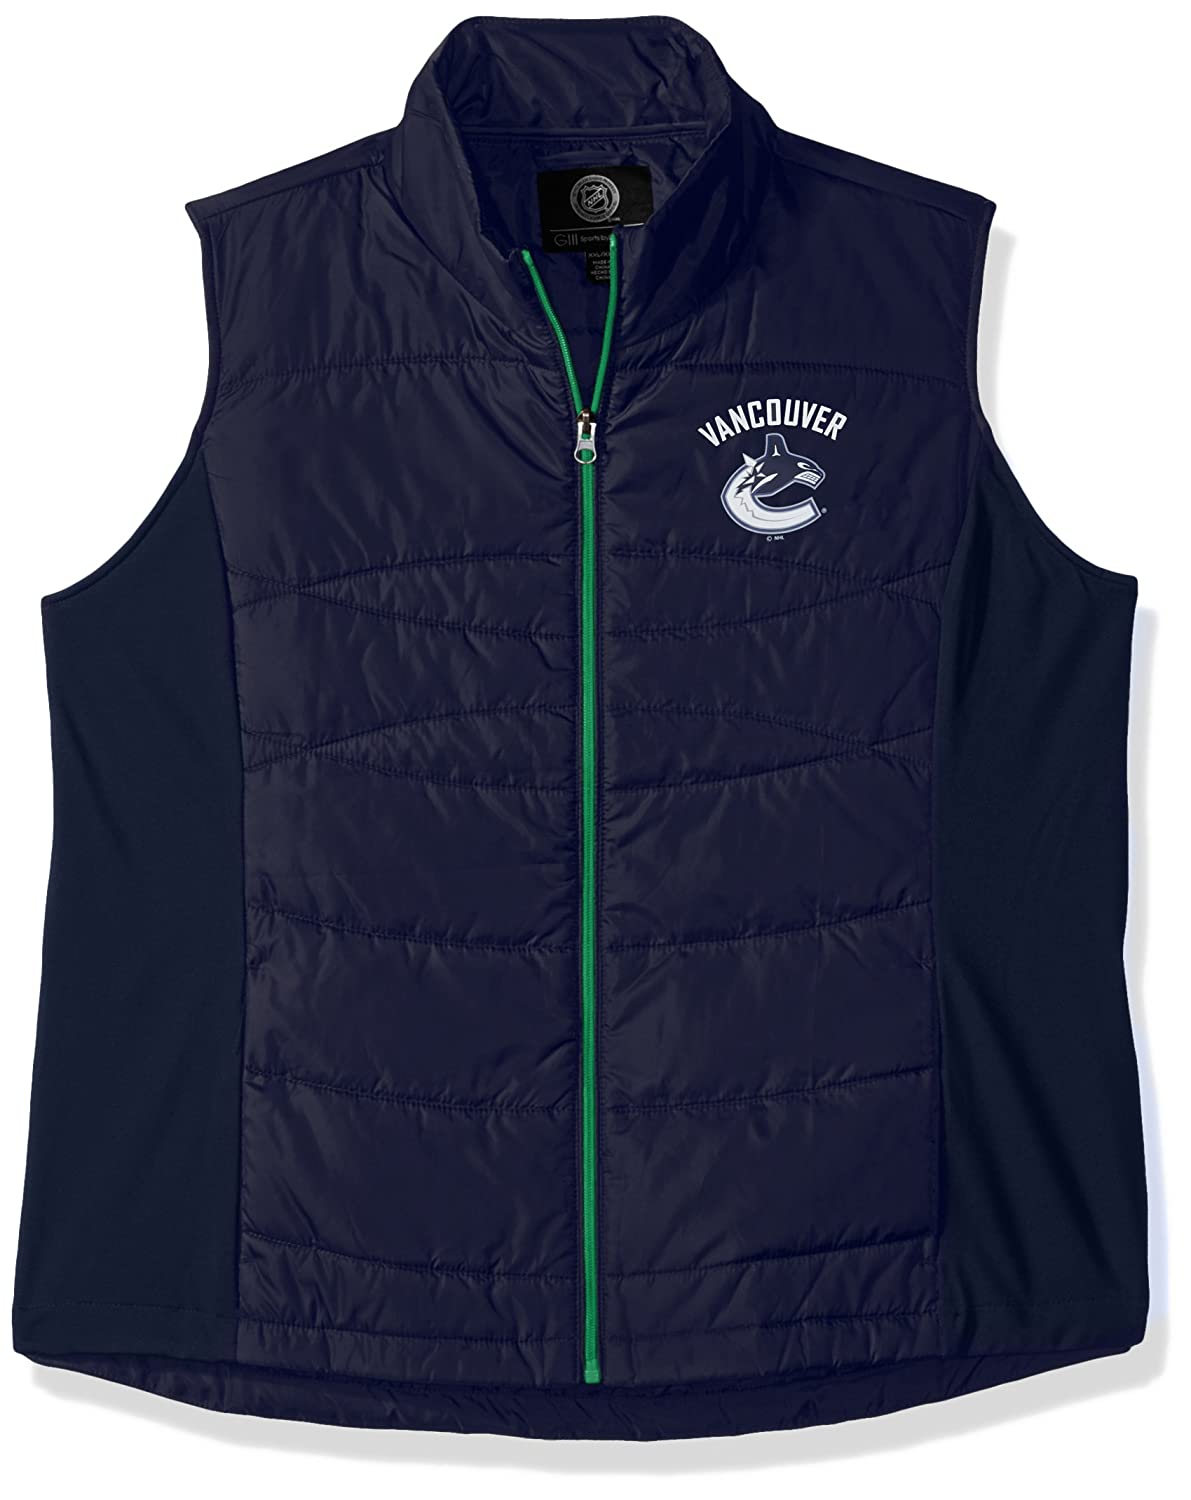 GIII For Her Women's Wing Back Vest, Navy, Large G-III Licensed Apparel NMY10119